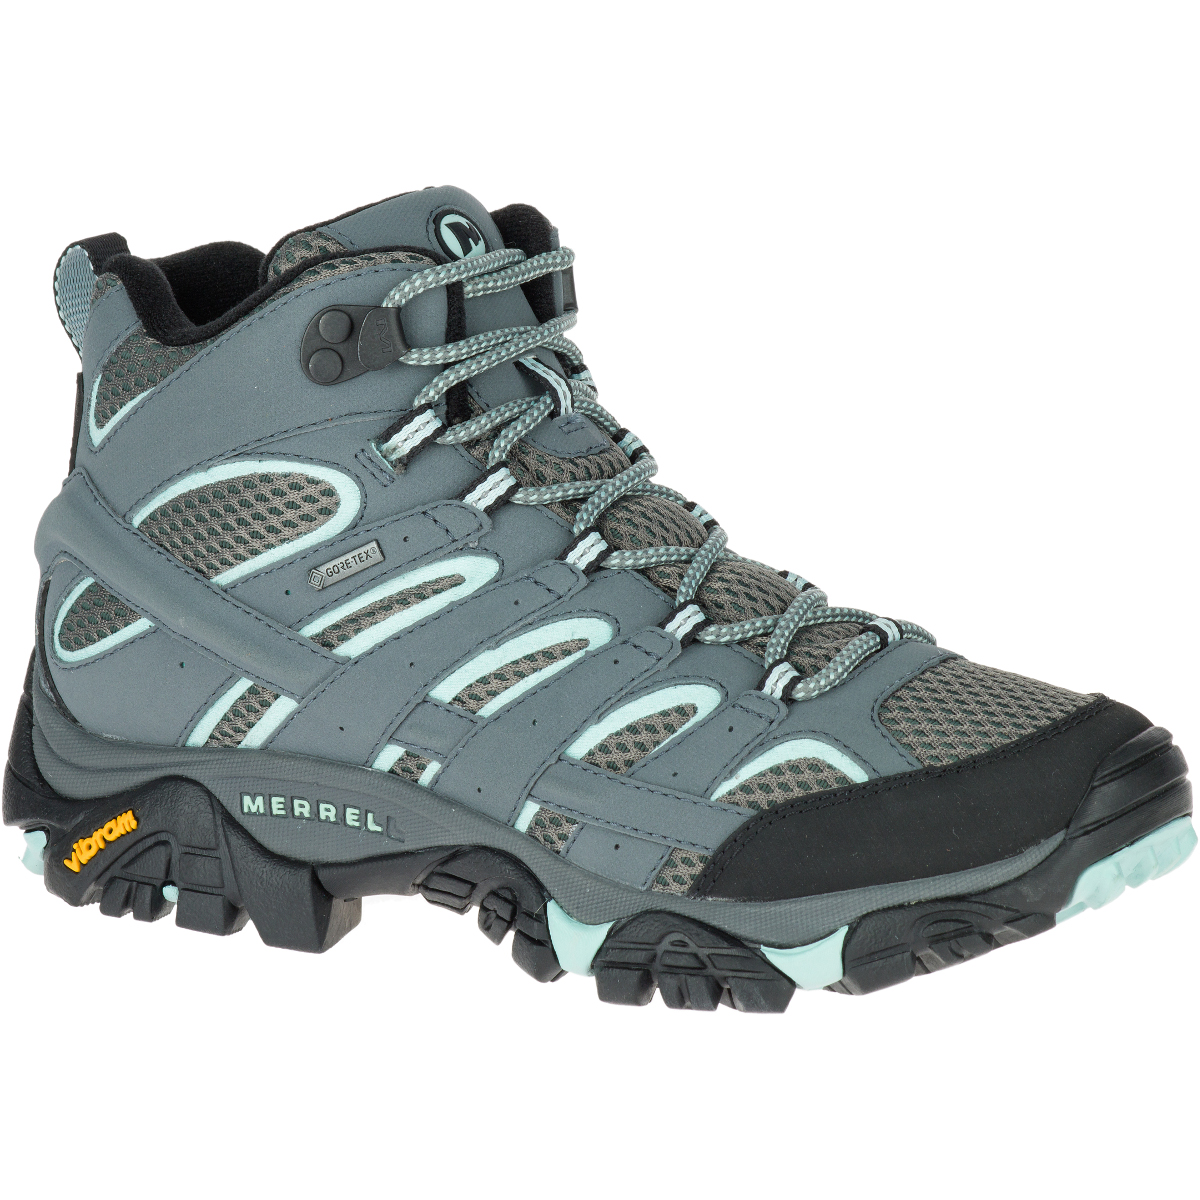 Merrell Women's Moab 2 Gore-Tex Waterproof Hiking Boots,sedona Sage, Wide - Black, 9